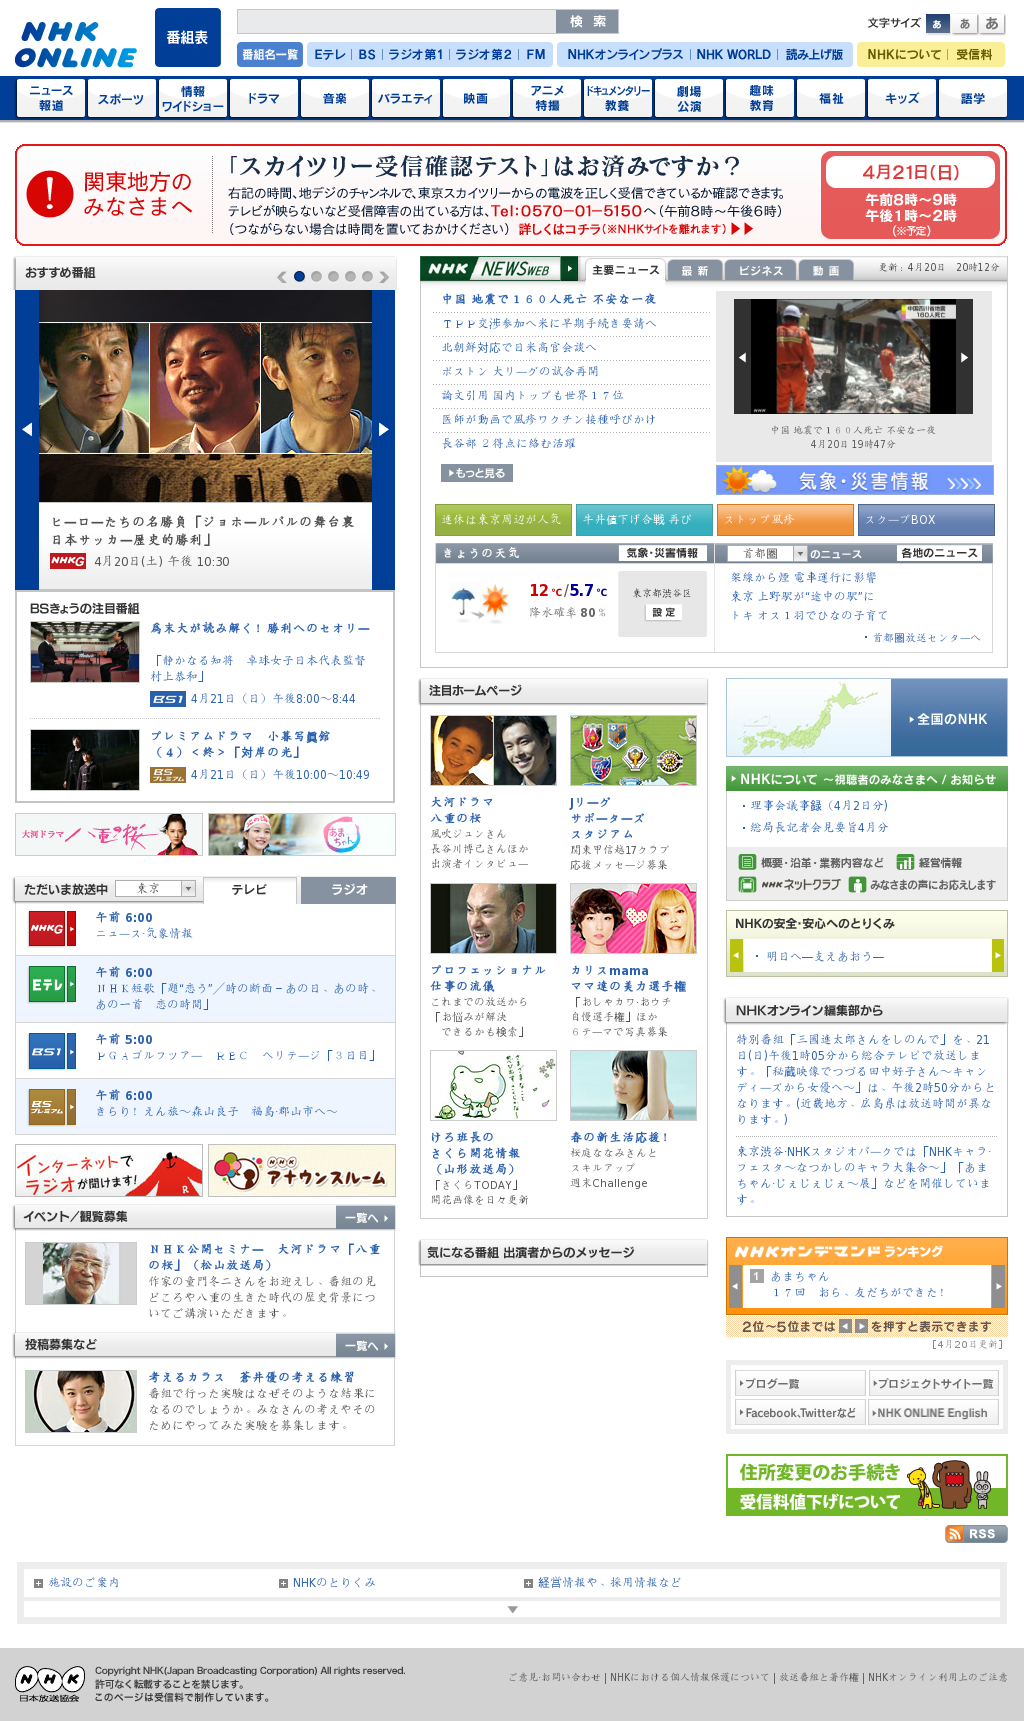 NHK Online at Saturday April 20, 2013, 9:15 p.m. UTC